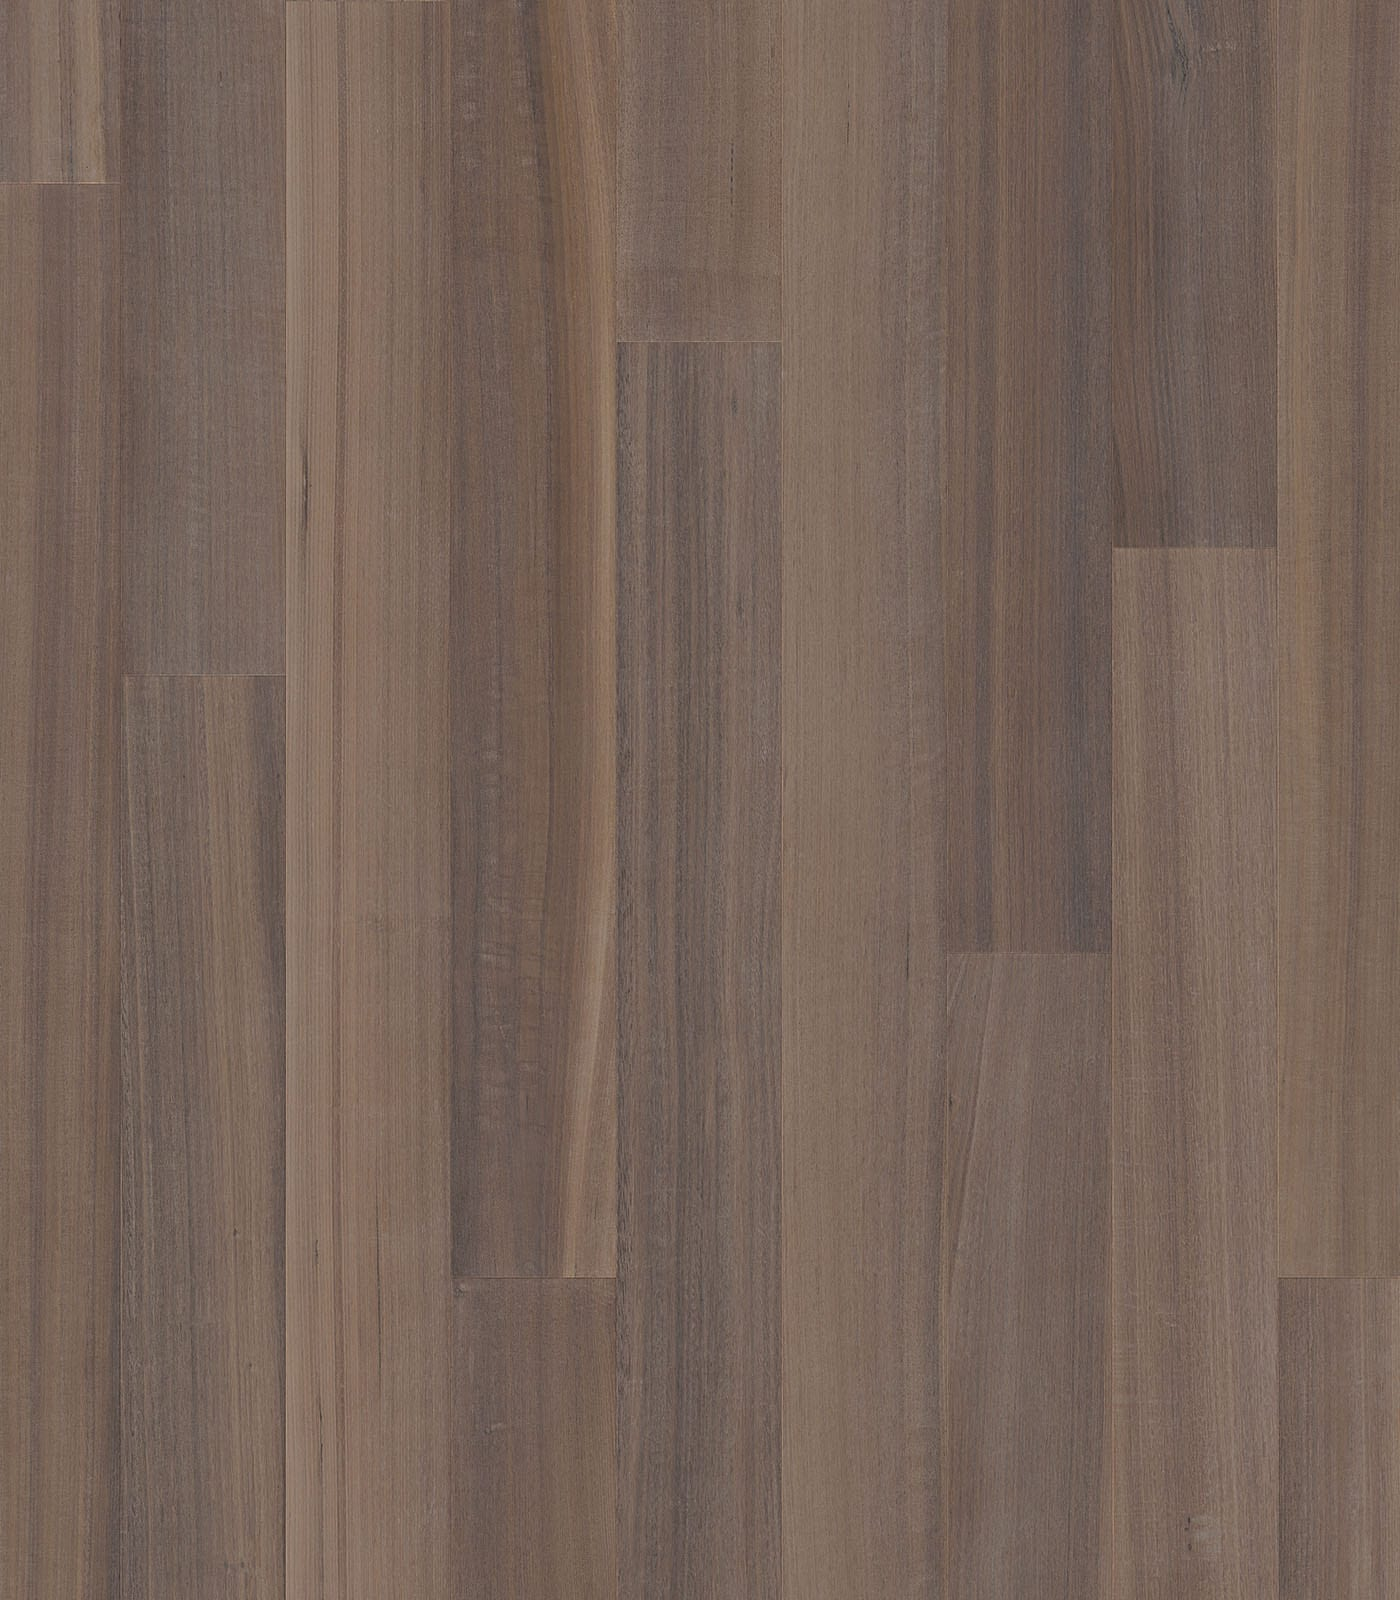 Swan Valley-After Oak collection- Tasmanian Oak Floors-flat